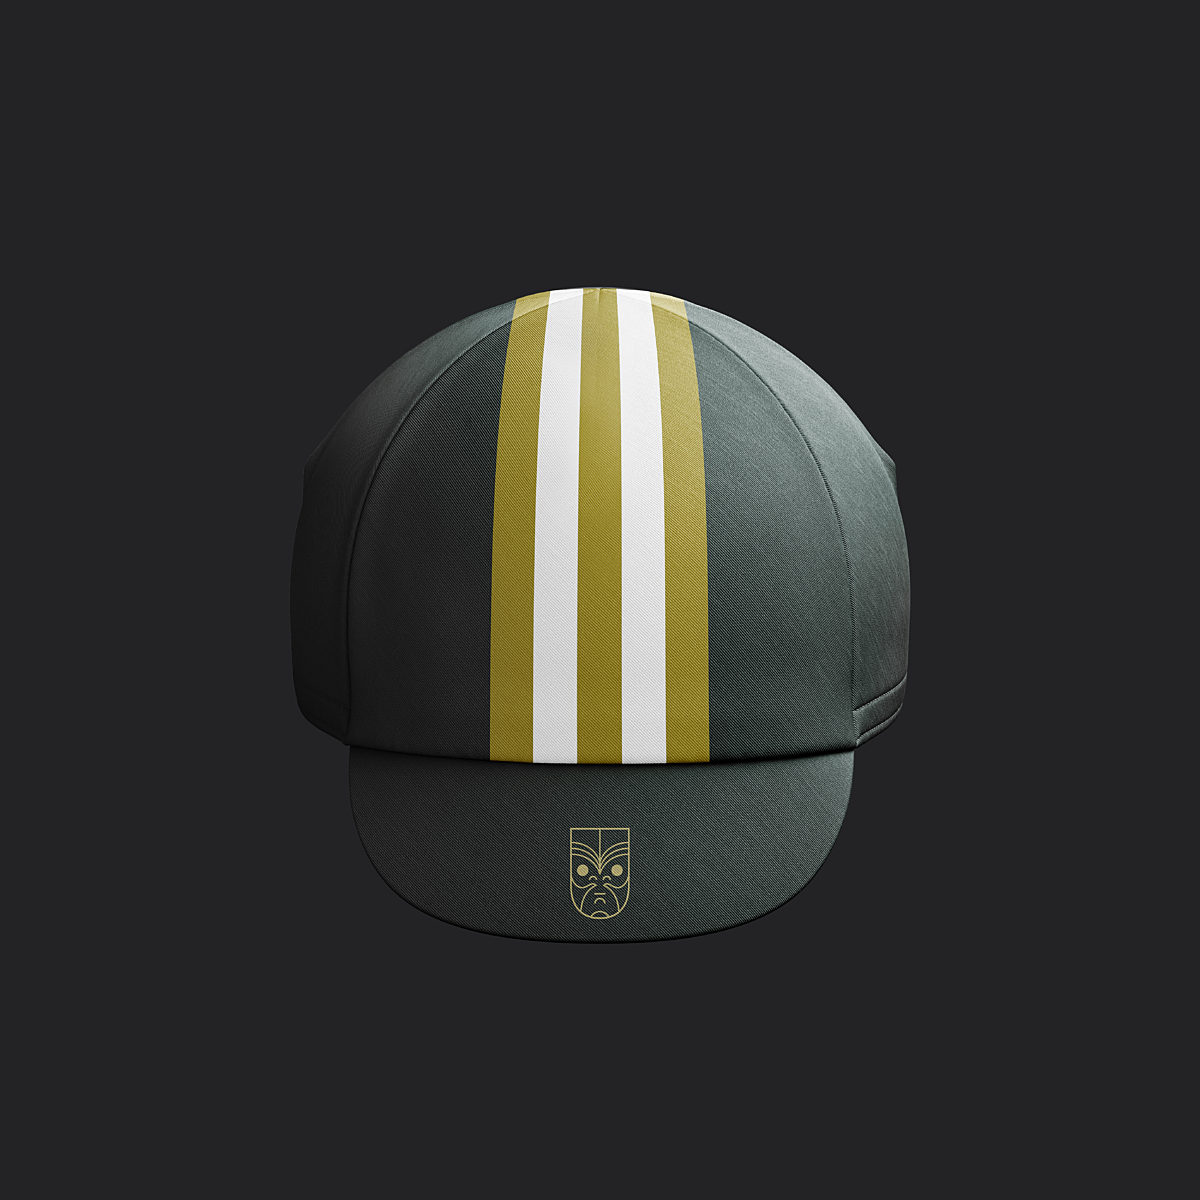 Bodhi cycling collection caps